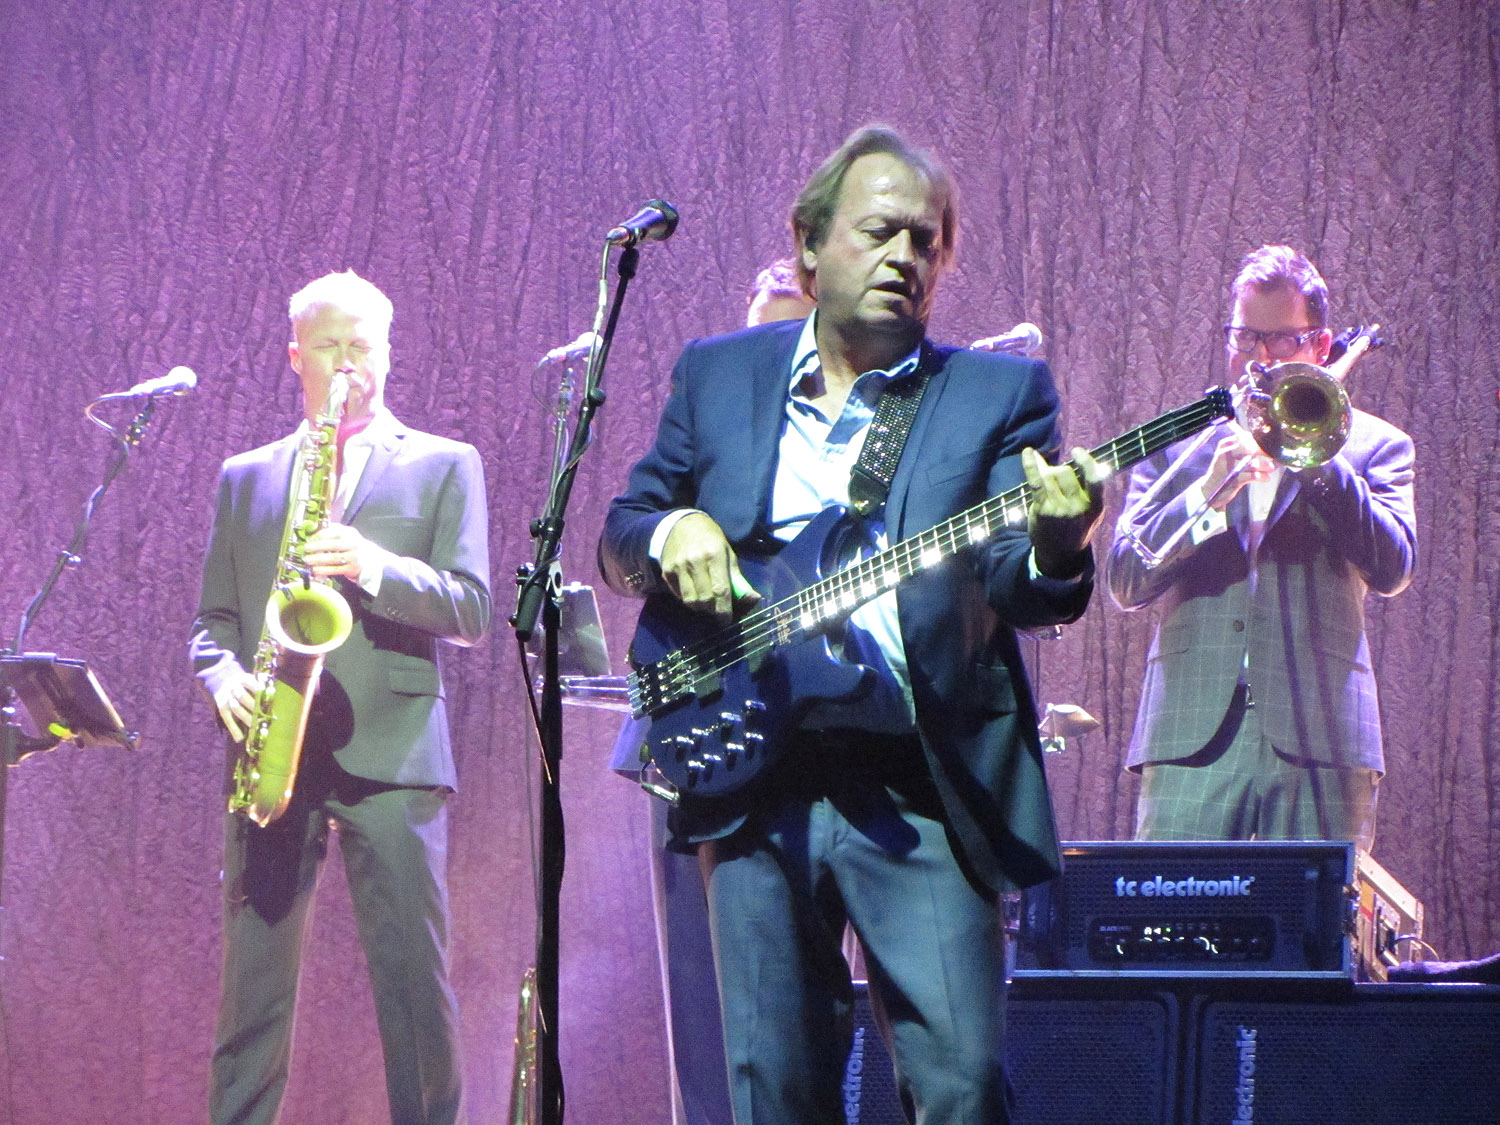 LEVEL 42 – The Lowry, Salford, 4 October 2016